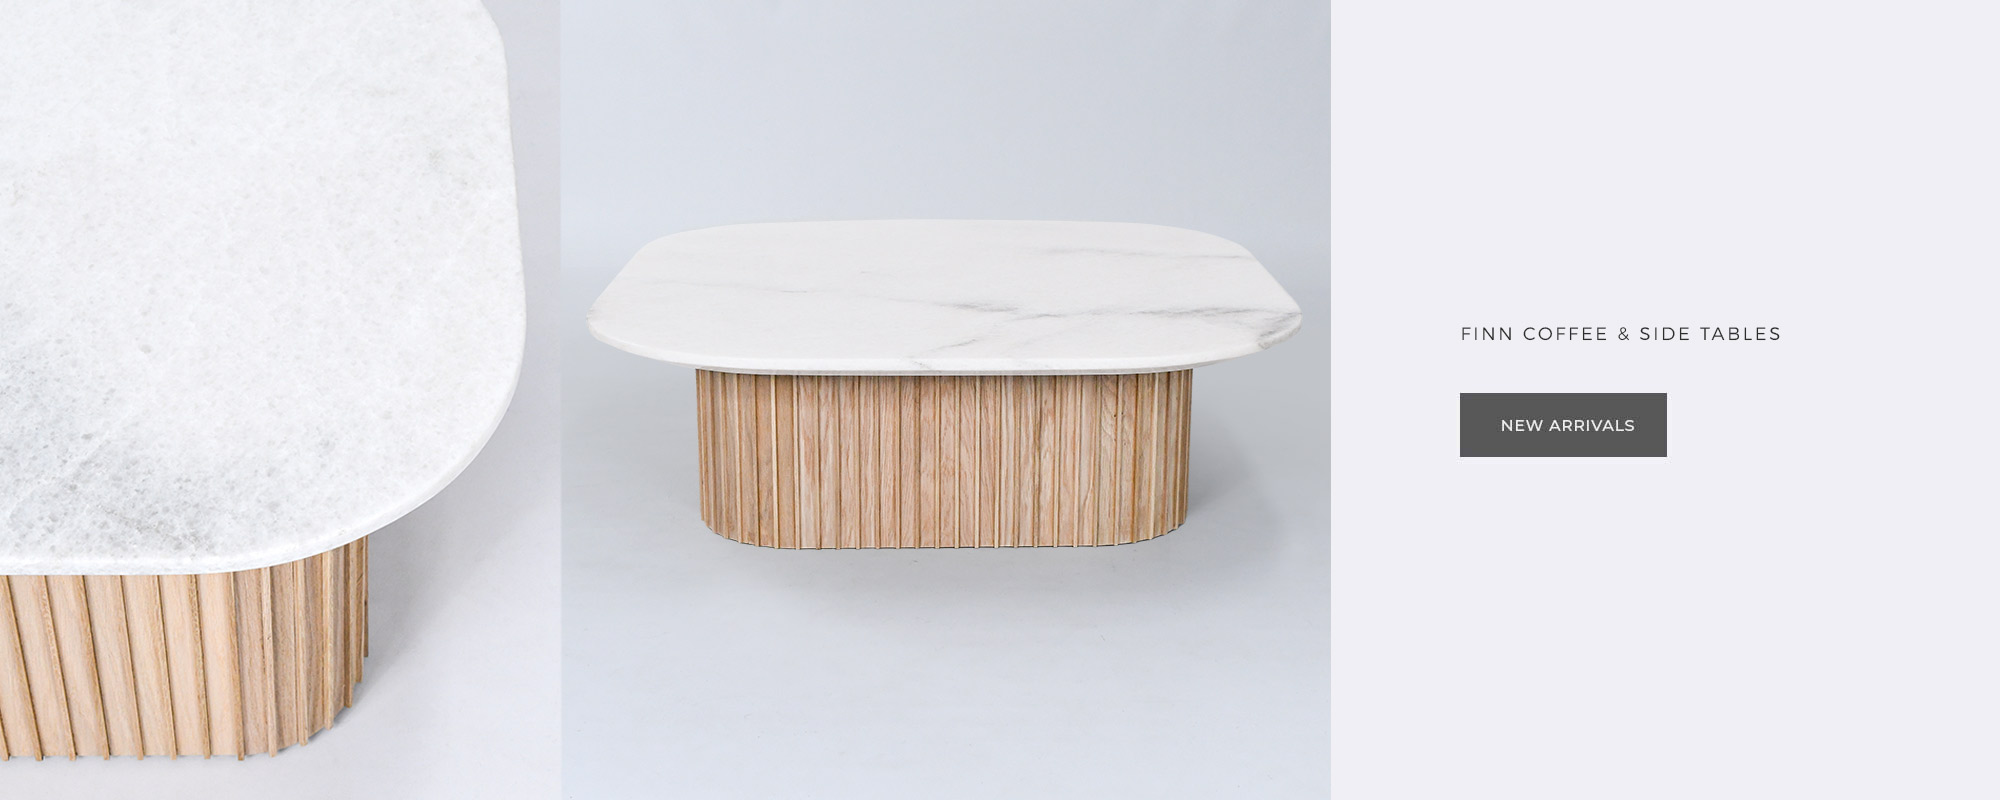 finn coffee and side tables